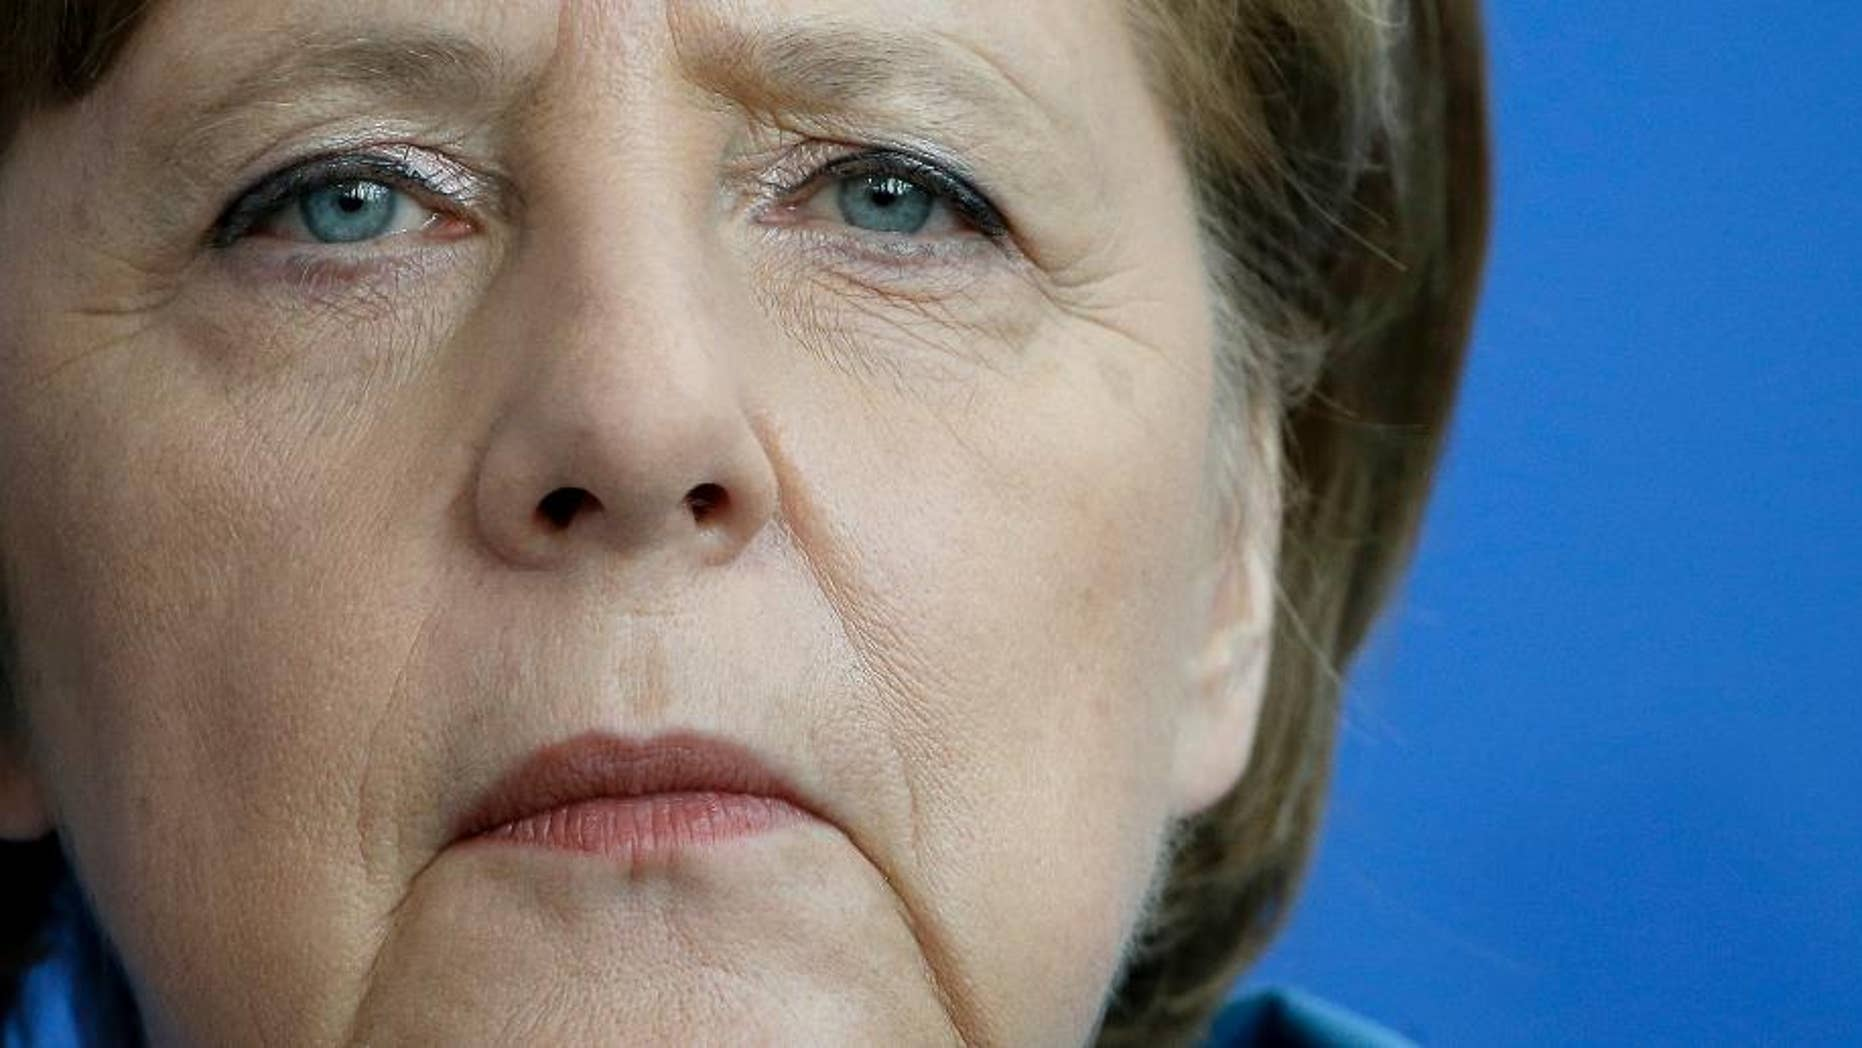 German Chancellor Angela Merkel attends a joint press conference with Prime Minister of the Czech Republic Bohuslav Sobotka as part of a meeting at the Chancellery in Berlin, Germany, Monday, May 4, 2015. (AP Photo/Michael Sohn)